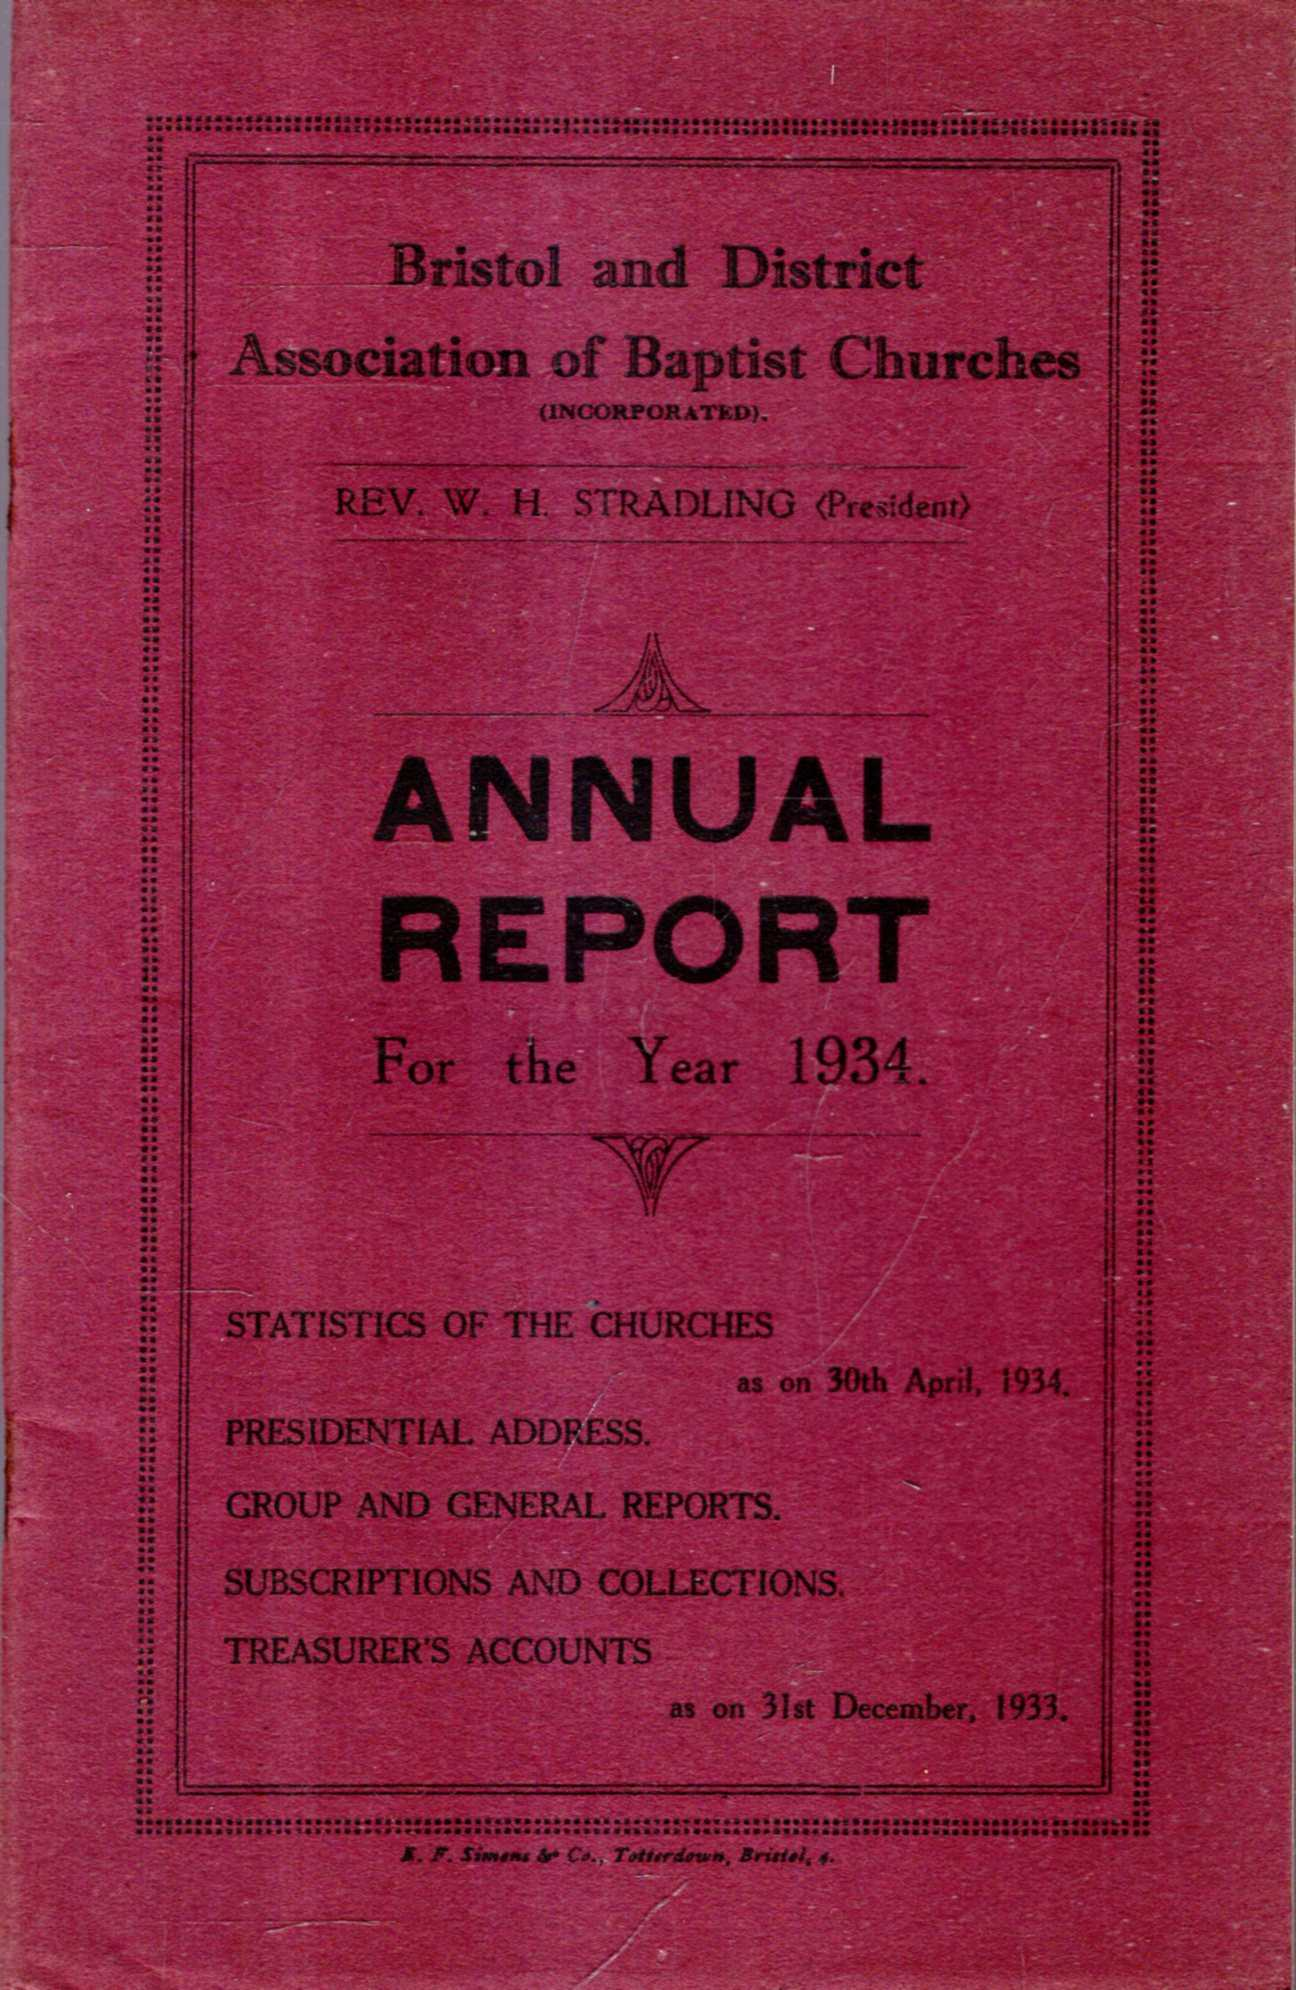 Image for Bristol and District Association of Baptist Churches : Annual Report for the Year 1934